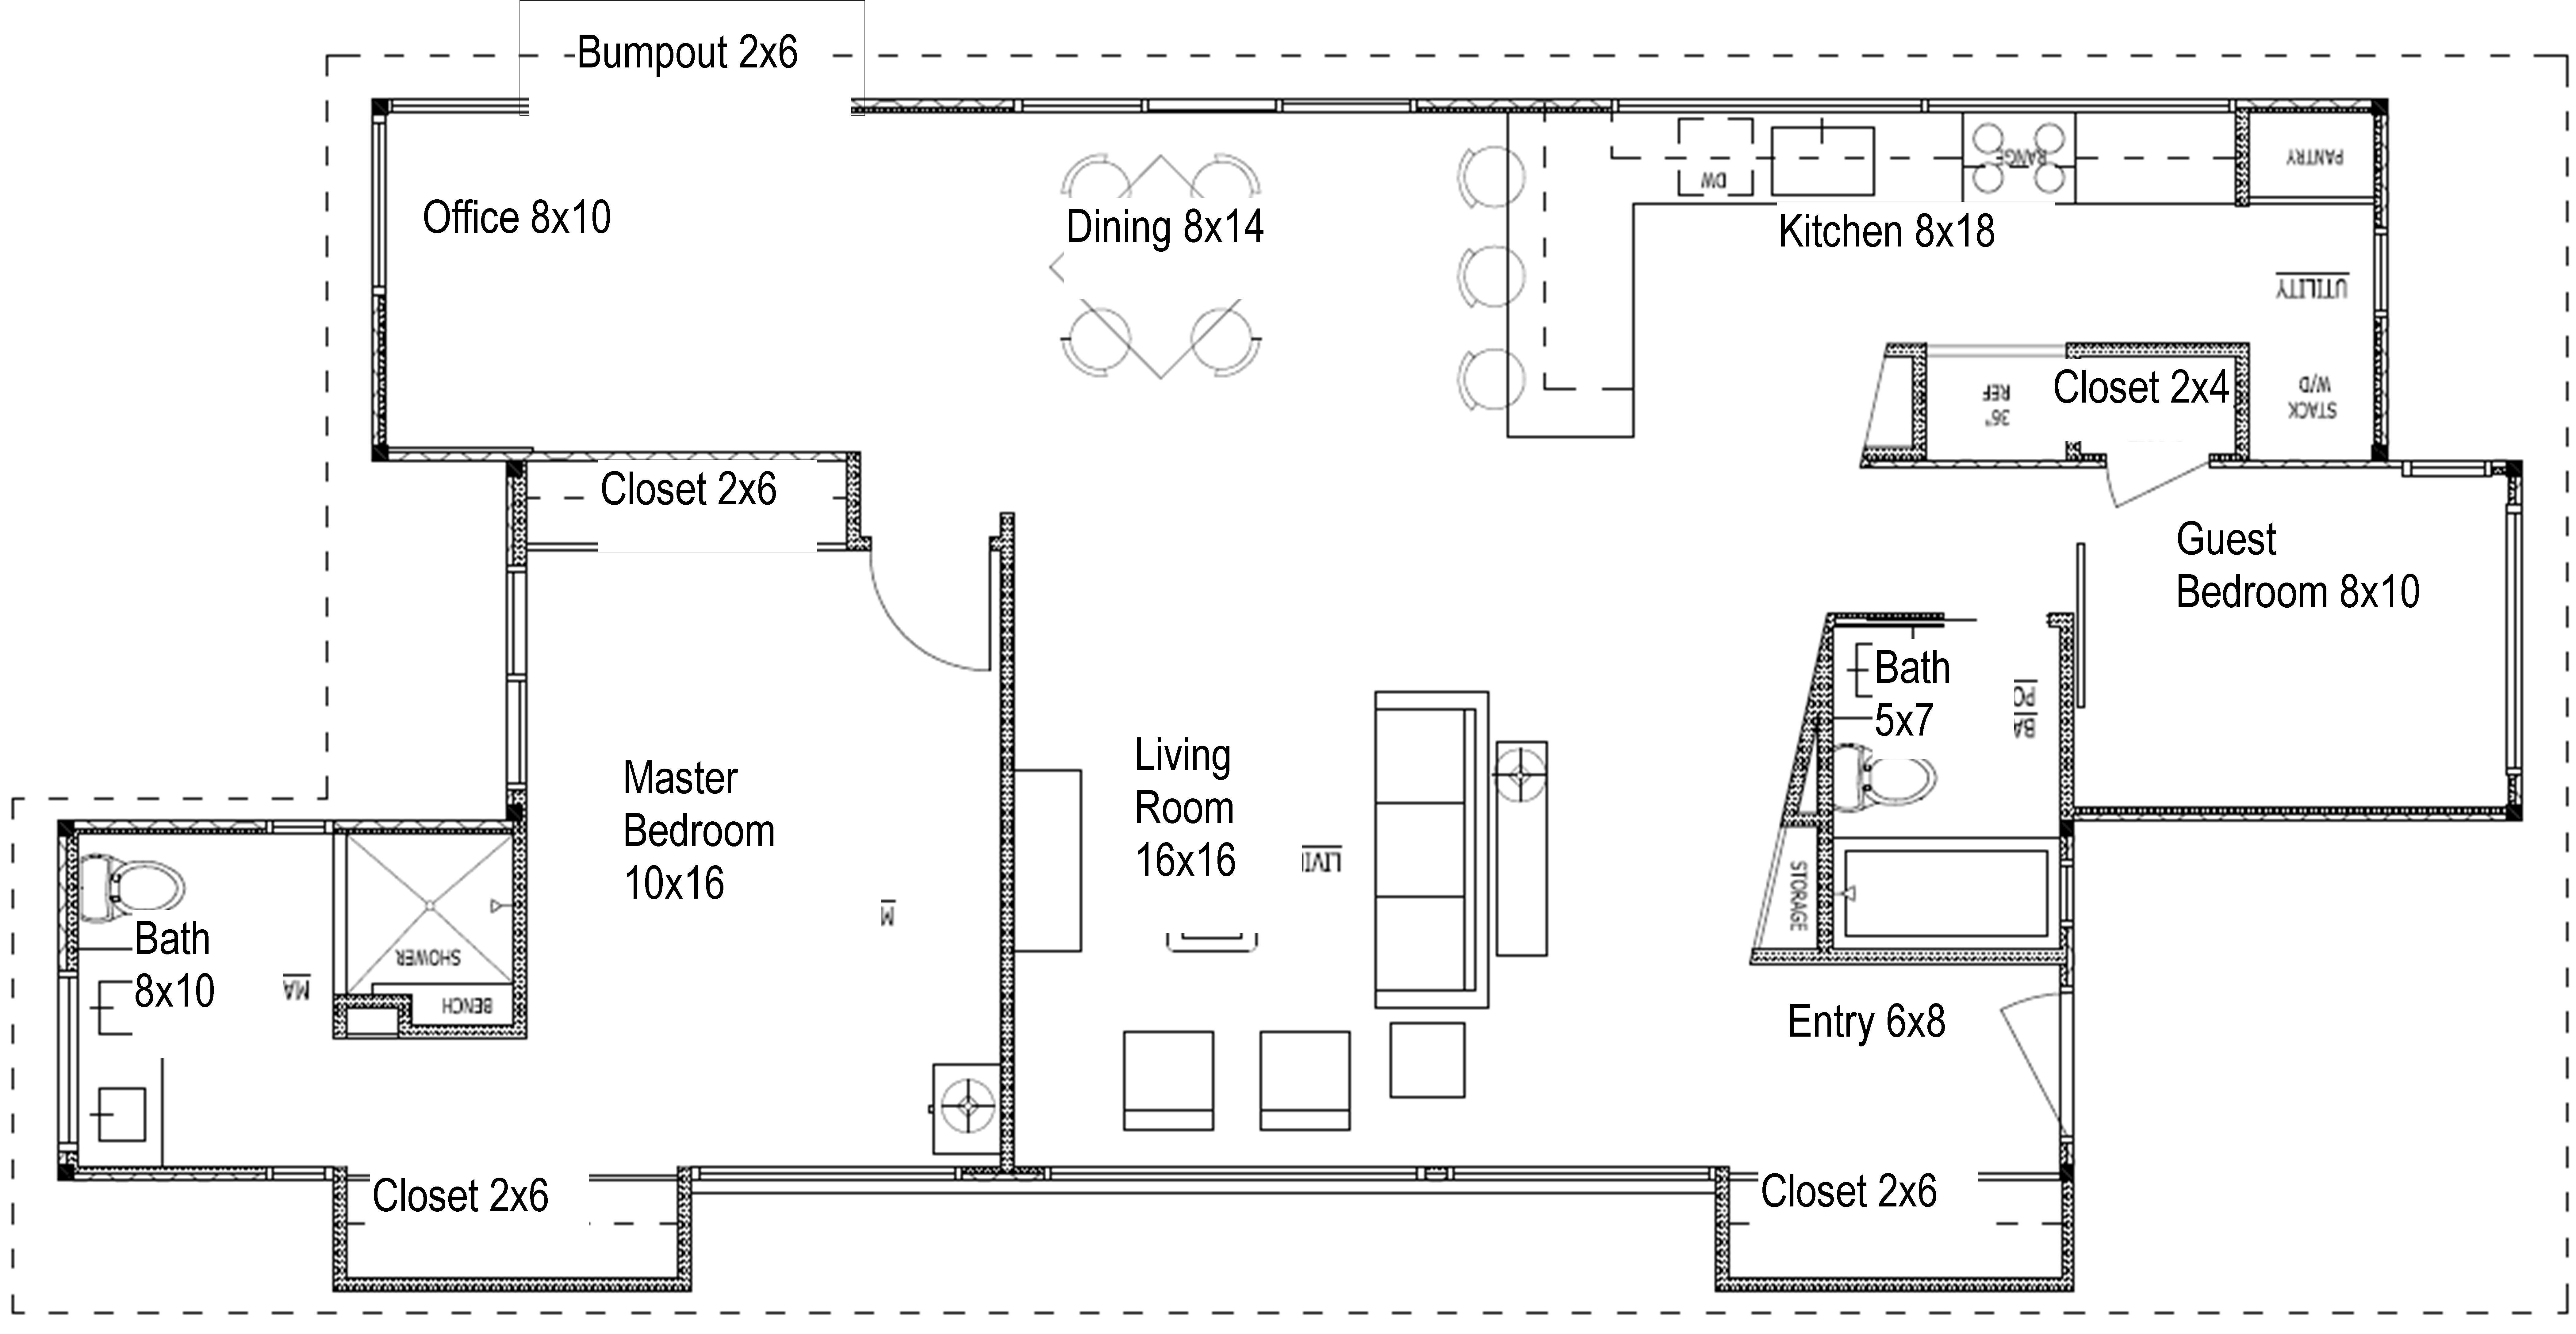 Best Ideas Standard Closet Dimensions With Minimum Dressing Space — Thehoppywanderer Com With Pictures